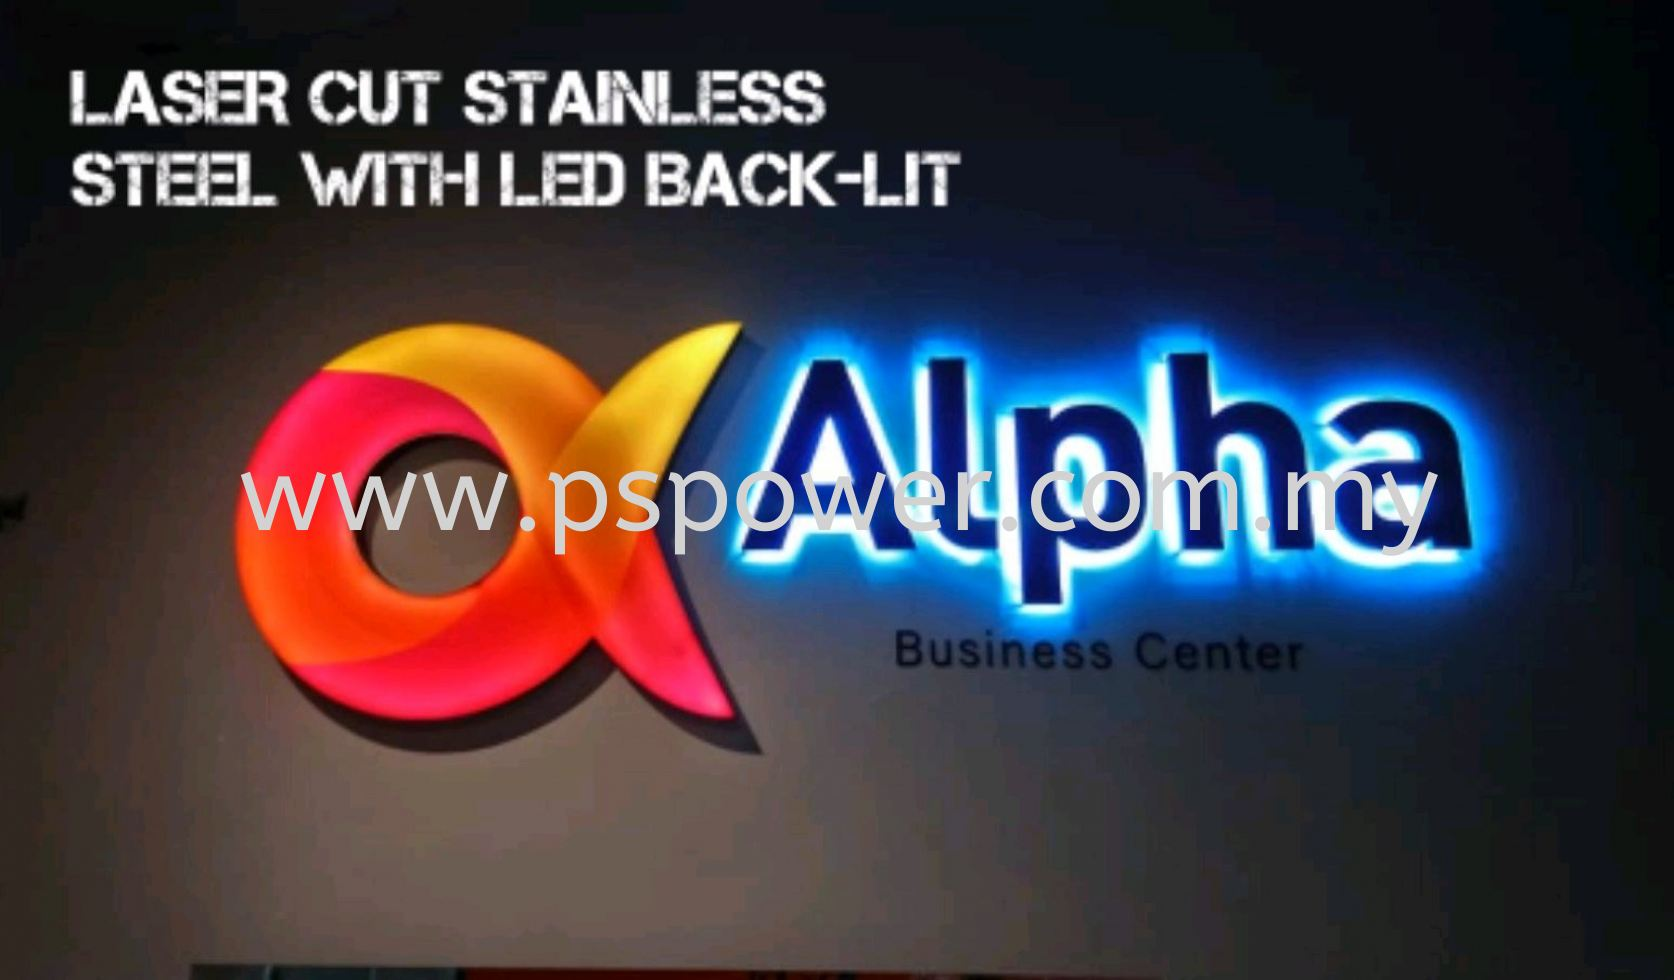 LASER CUT STAINLESS STEEL WITH LED BACK-LIT